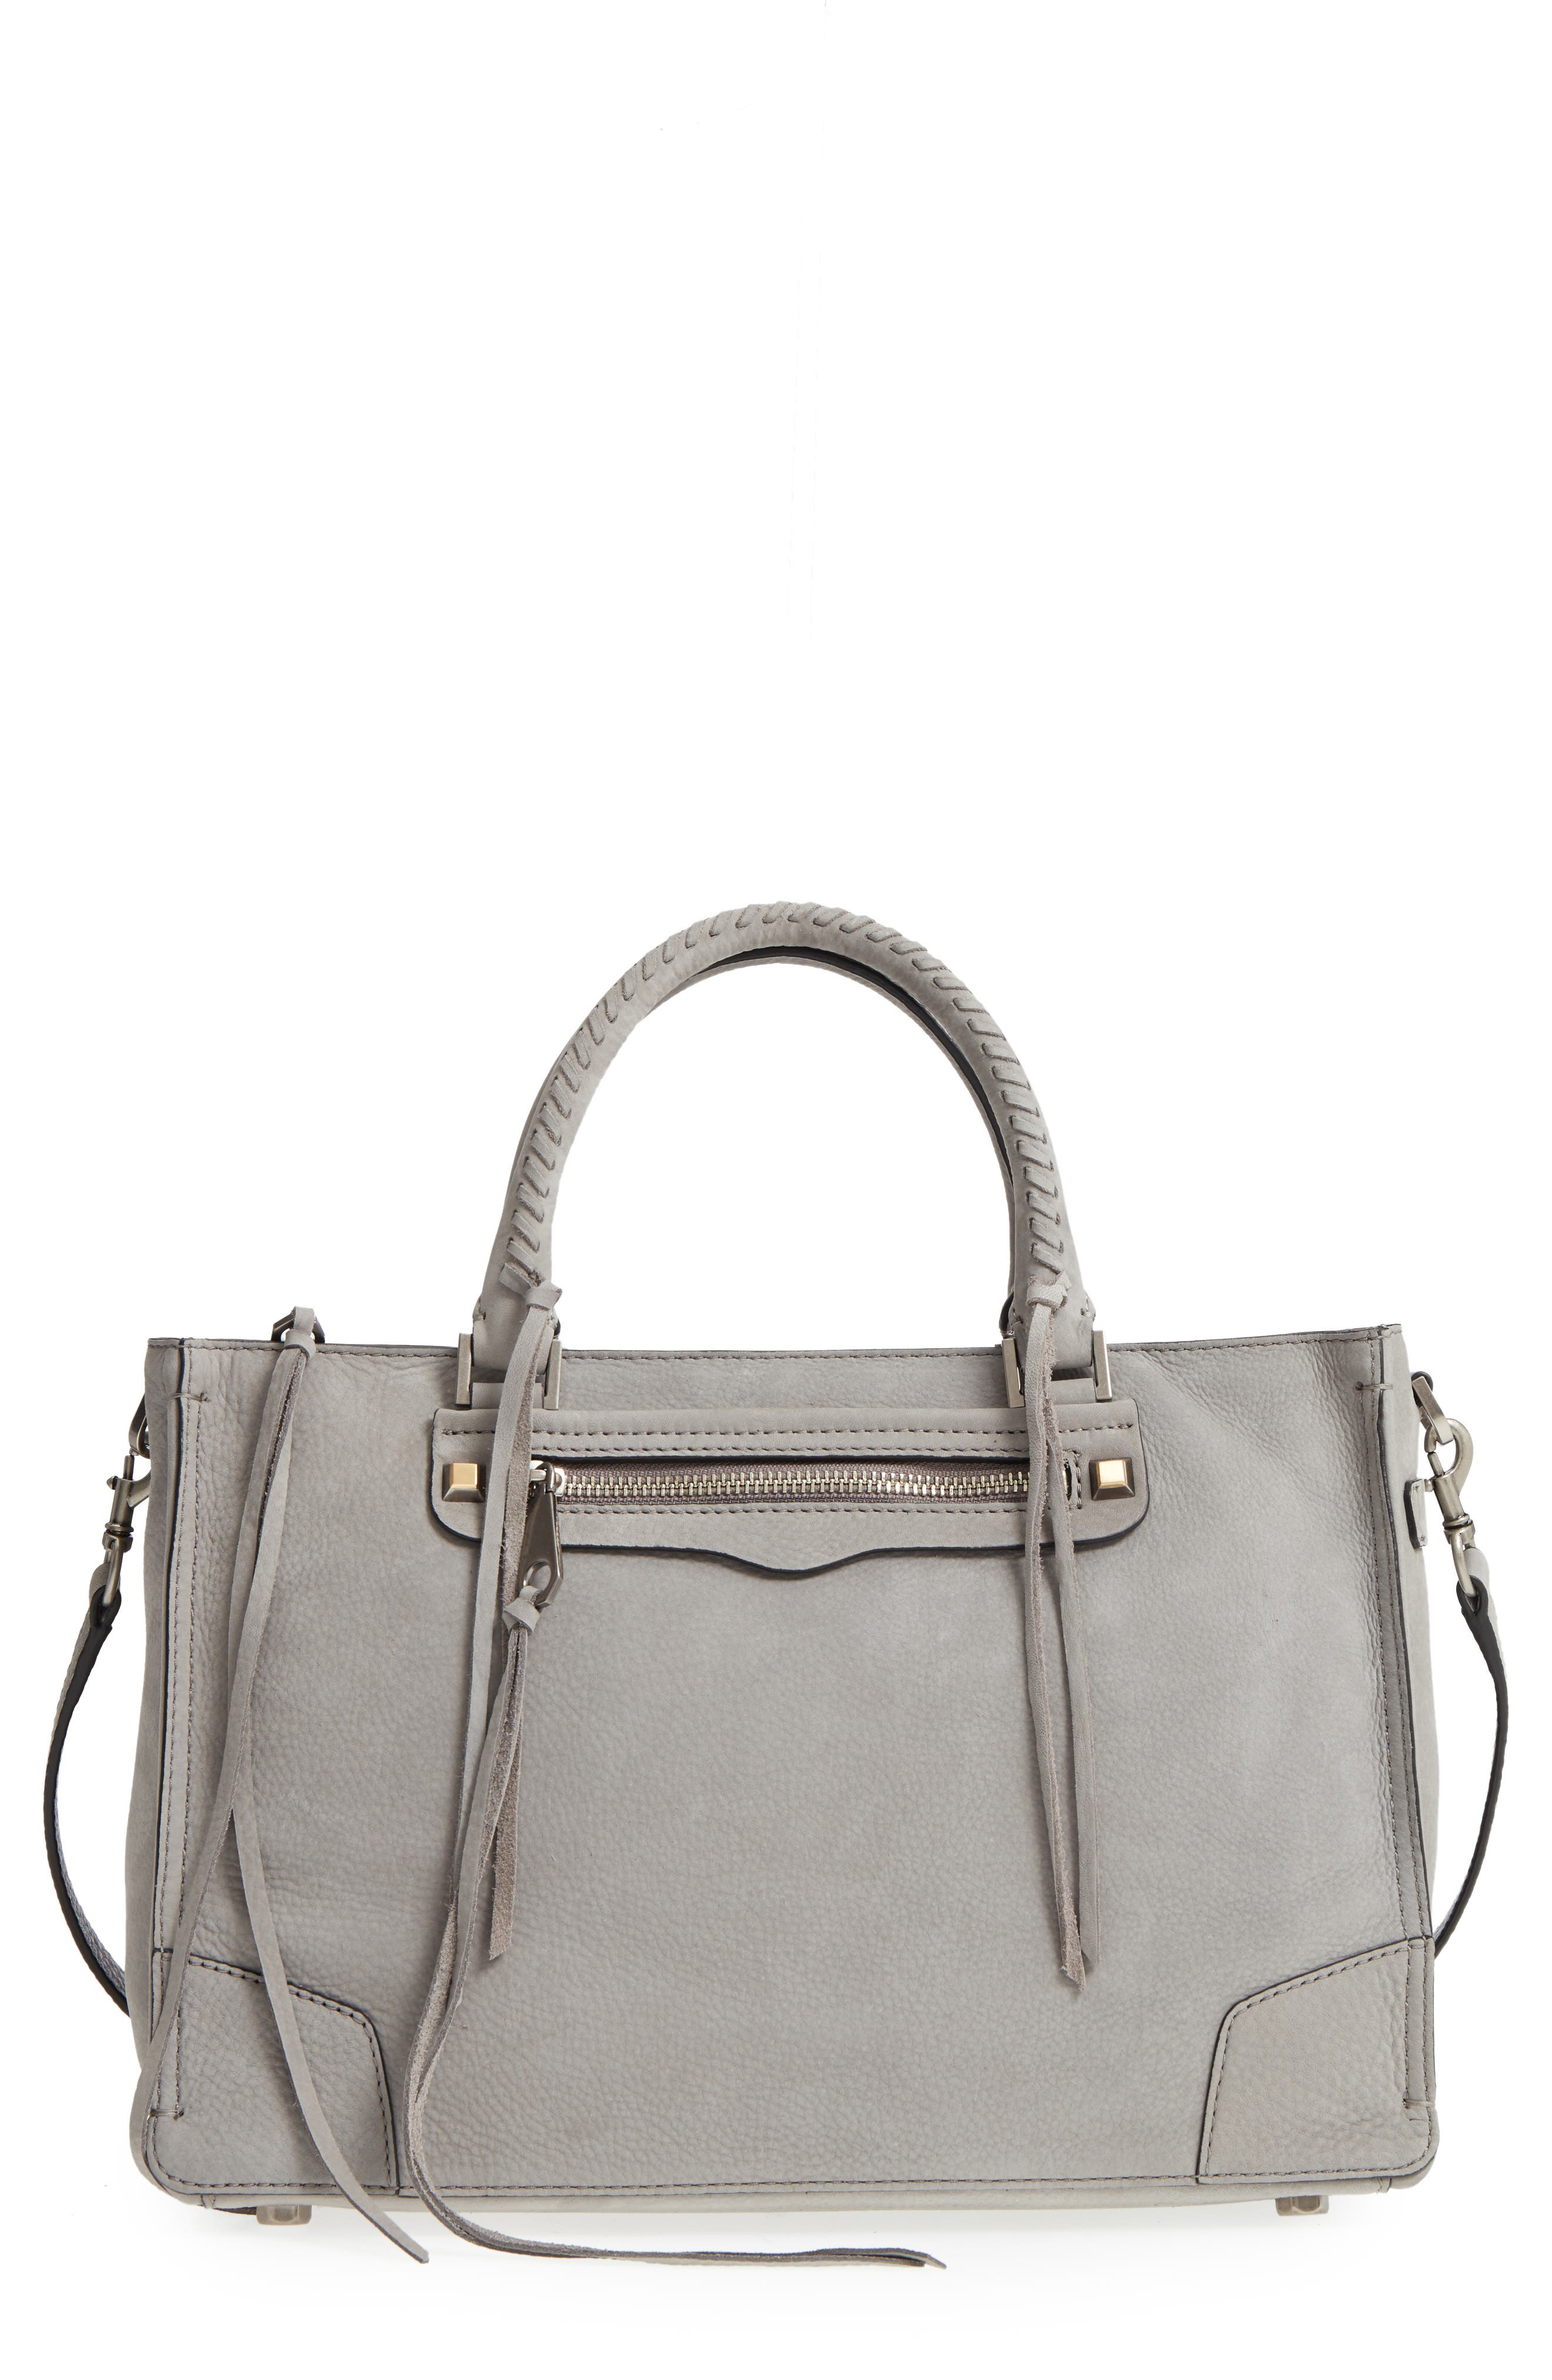 'REGAN' SATCHEL - GREY